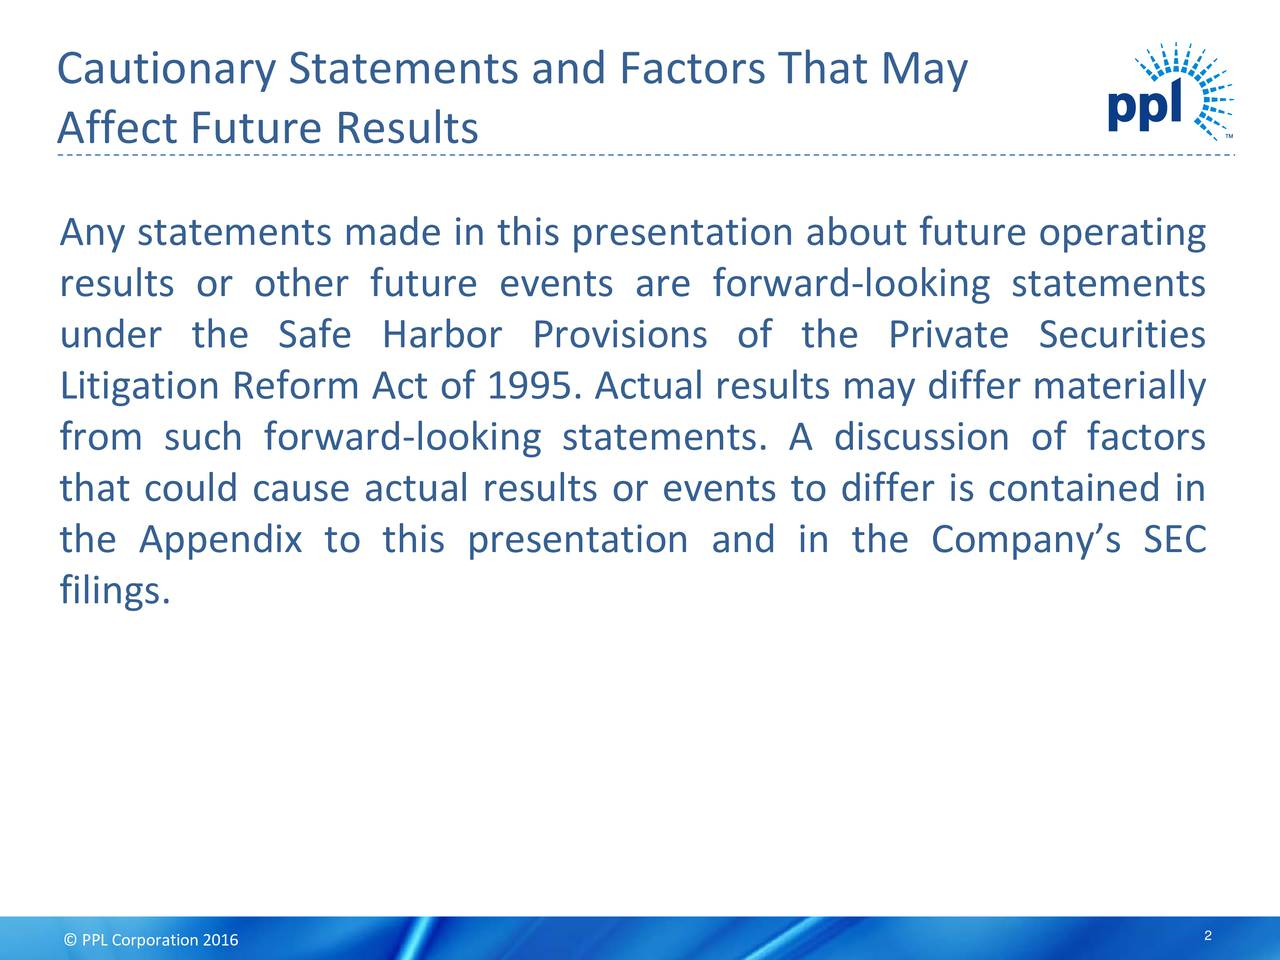 Affect Future Results Any statements made in this presentation about future operating results or other future events are forward-looking statements under the Safe Harbor Provisions of the Private Securities Litigation Reform Act of 1995. Actual results may differ materially from such forward-looking statements. A discussion of factors that could cause actual results or events to differ is contained in the Appendix to this presentation and in the Companys SEC filings.